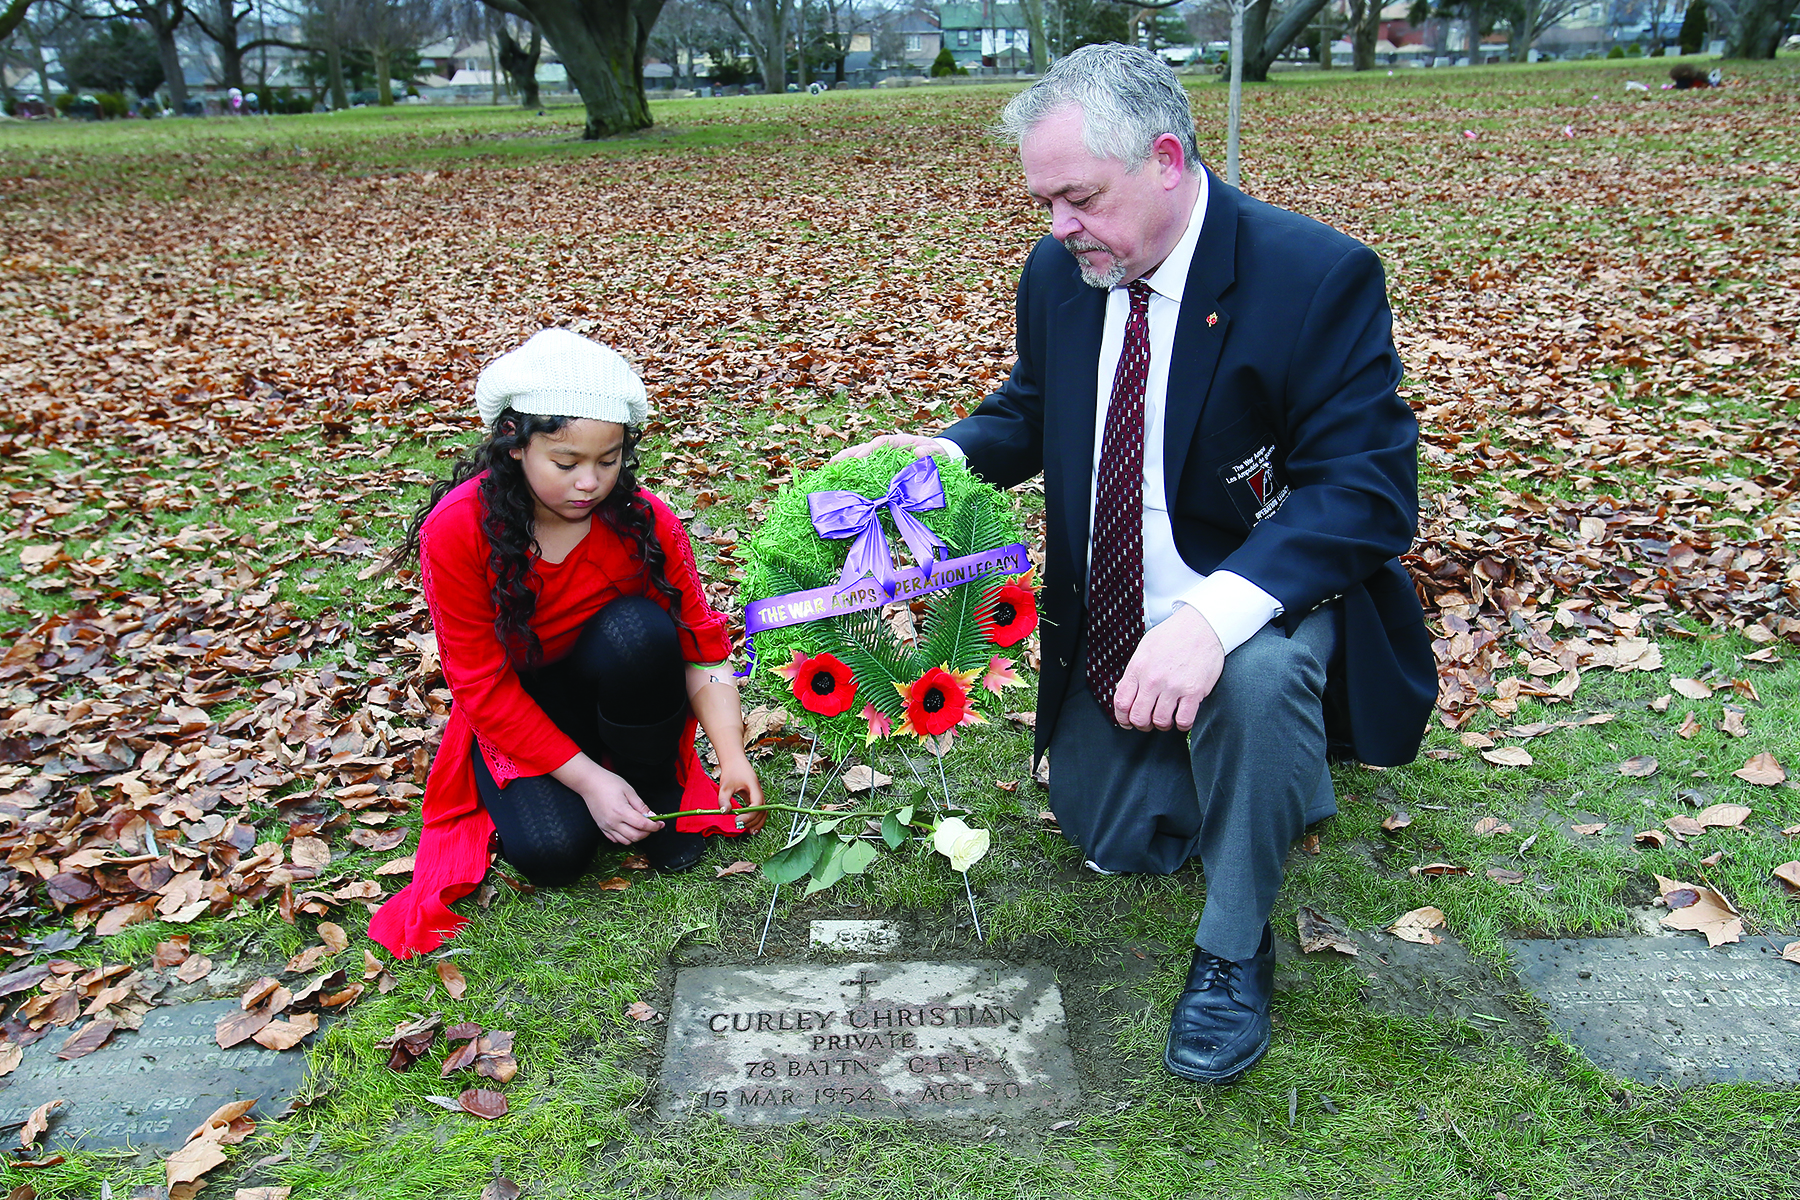 Rob Larman, a leg amputee, and Tiffany Ross, a left arm amputee and member of The War Amps Child Amputee (CHAMP) Program, lay a rose at the grave of Curley Christian, who lost all four limbs at Vimy Ridge, at Prospect Cemetery in Toronto, Ontario. Christian died on March 15, 1954 at 70 years of age. (john e. sokolowski, war amps)